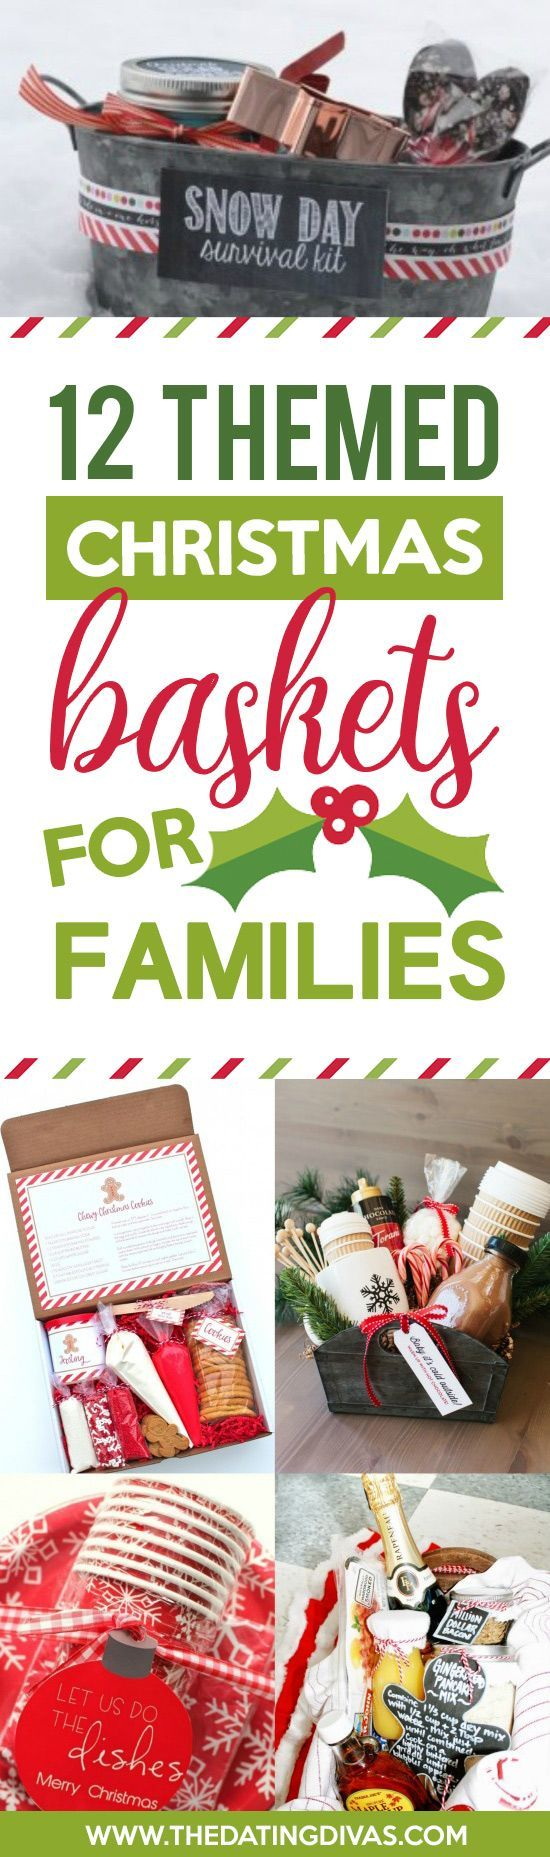 Best 25+ Christmas gift baskets ideas on Pinterest | Gift jars ...